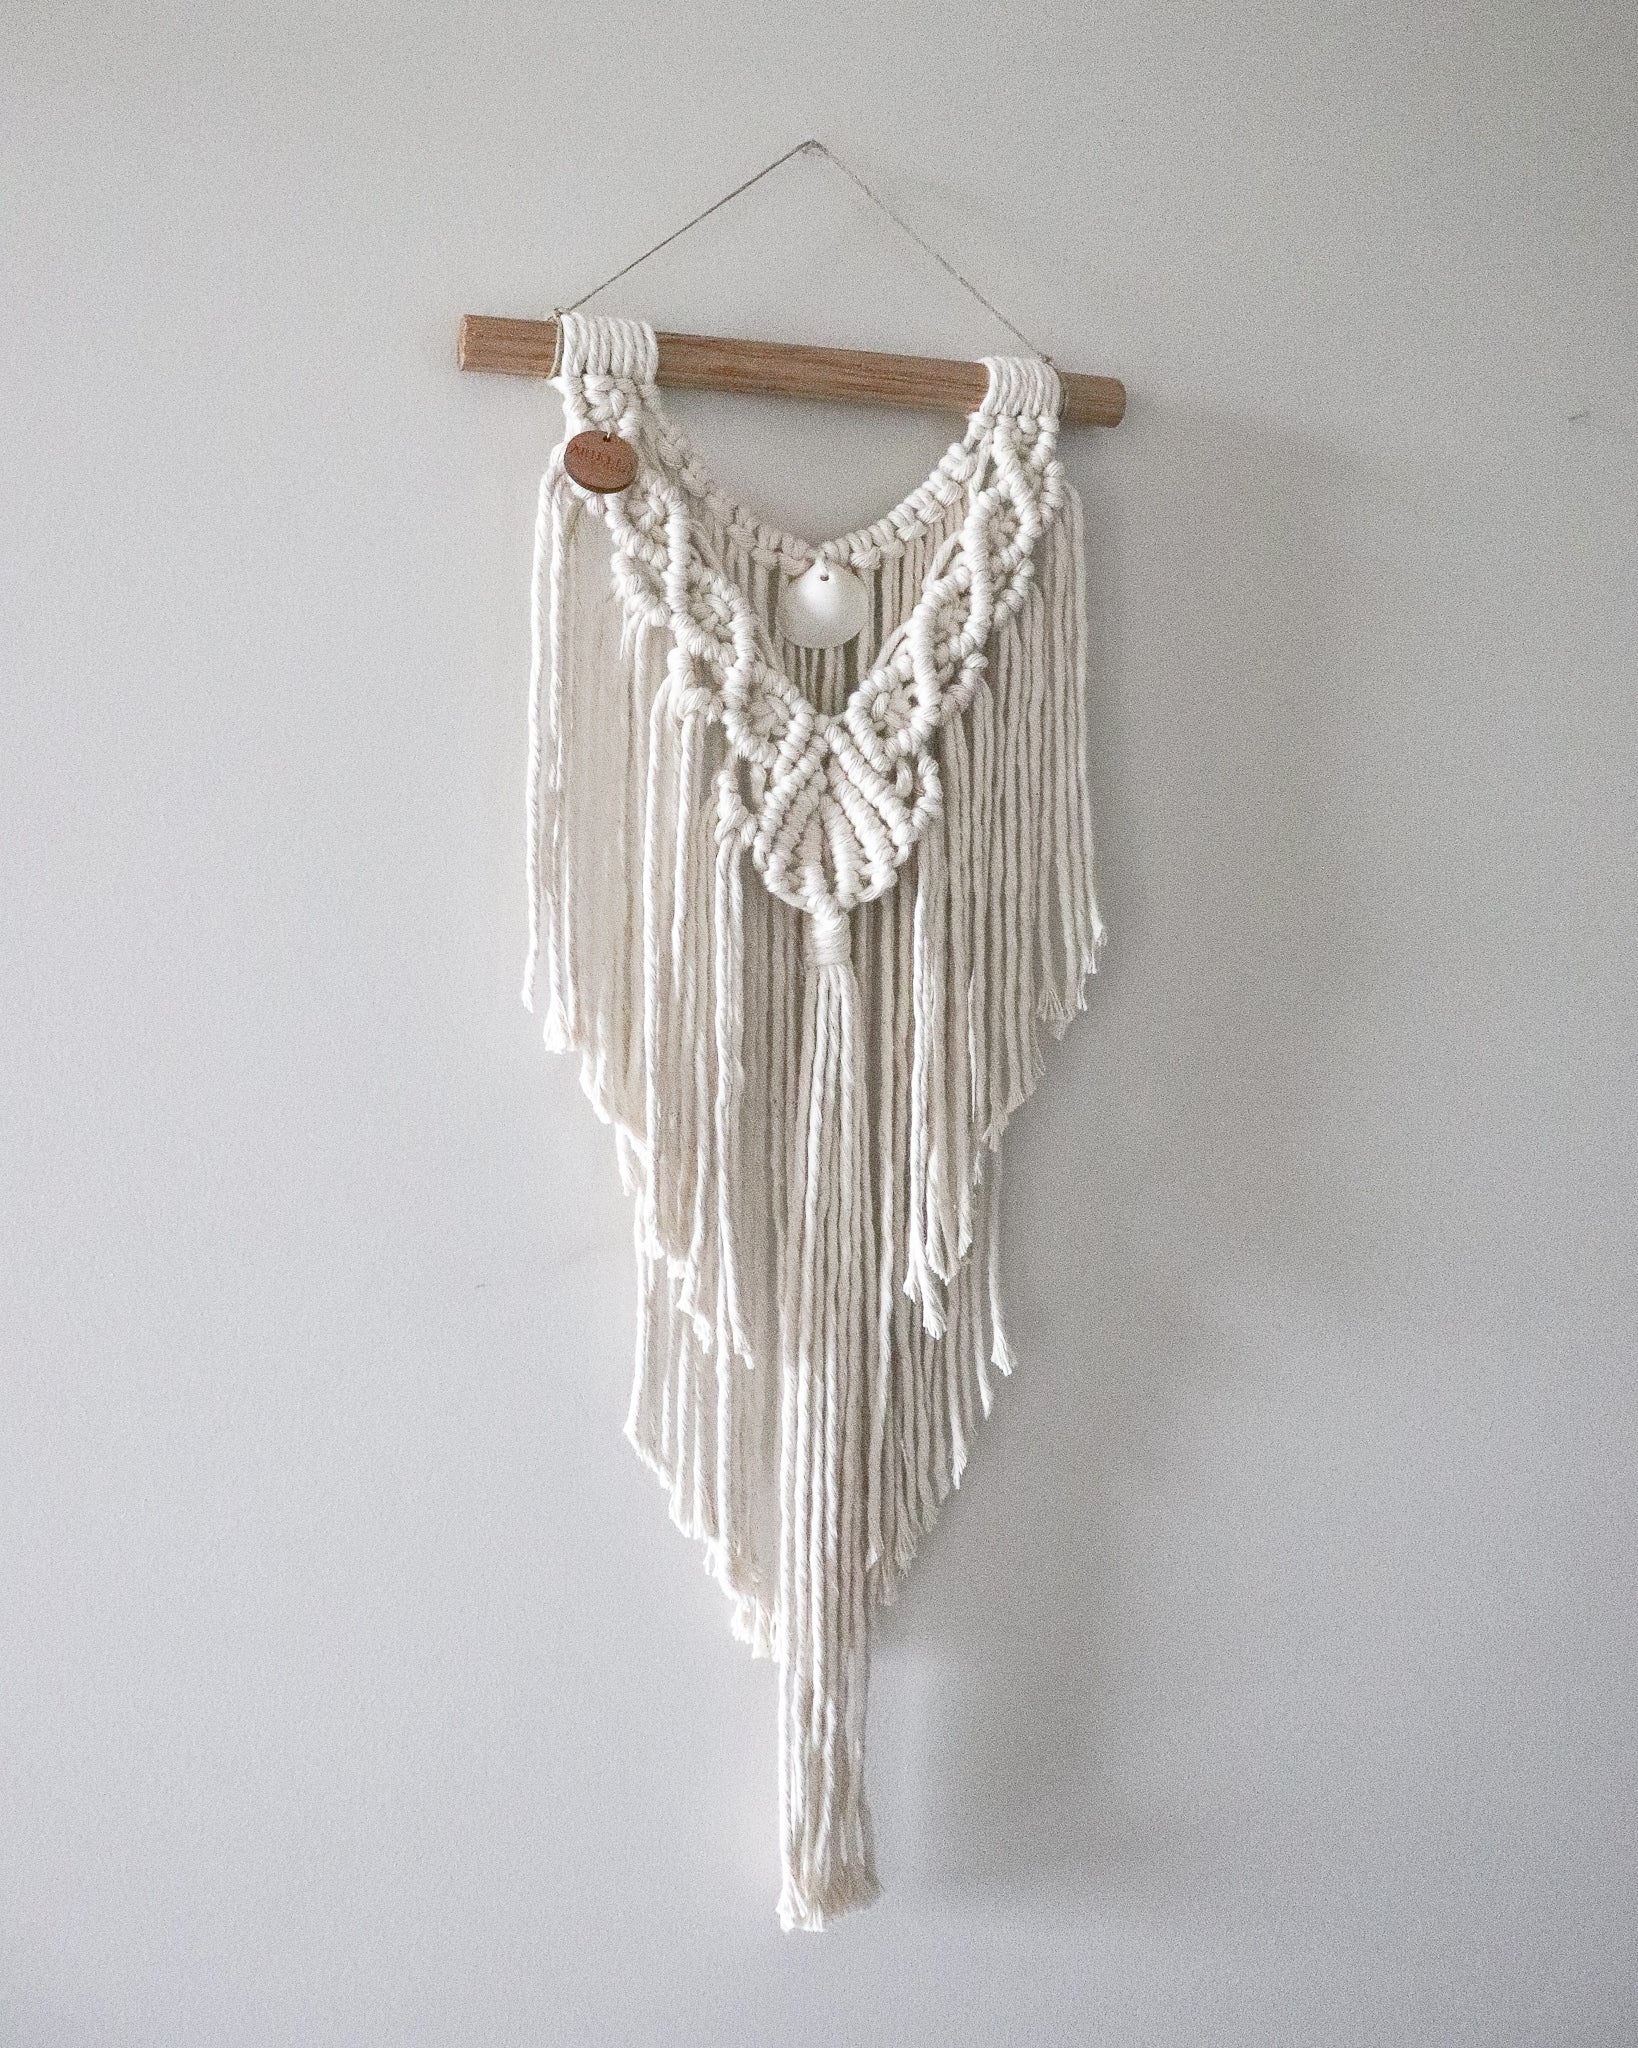 Natural | Small Macramè wall hanging